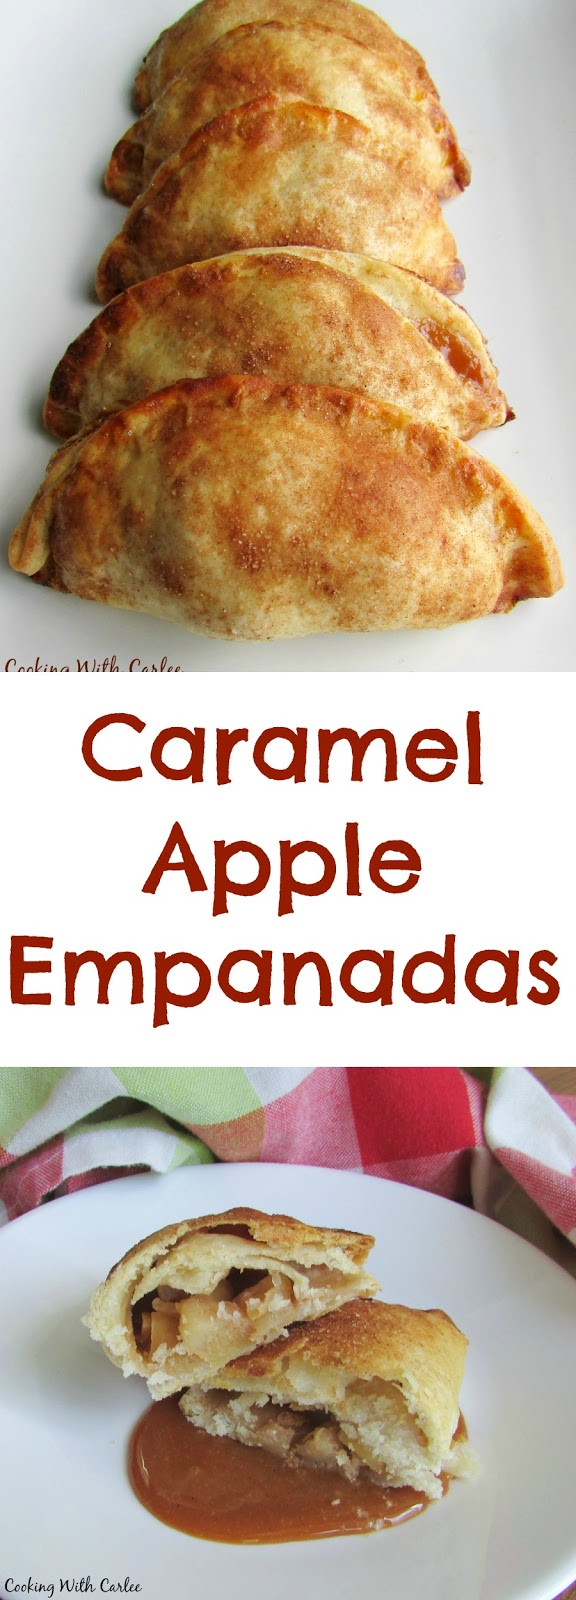 A warm flaky crust with a caramel apple filling is what dreams are made of! These caramel apple empanadas finger licking good!